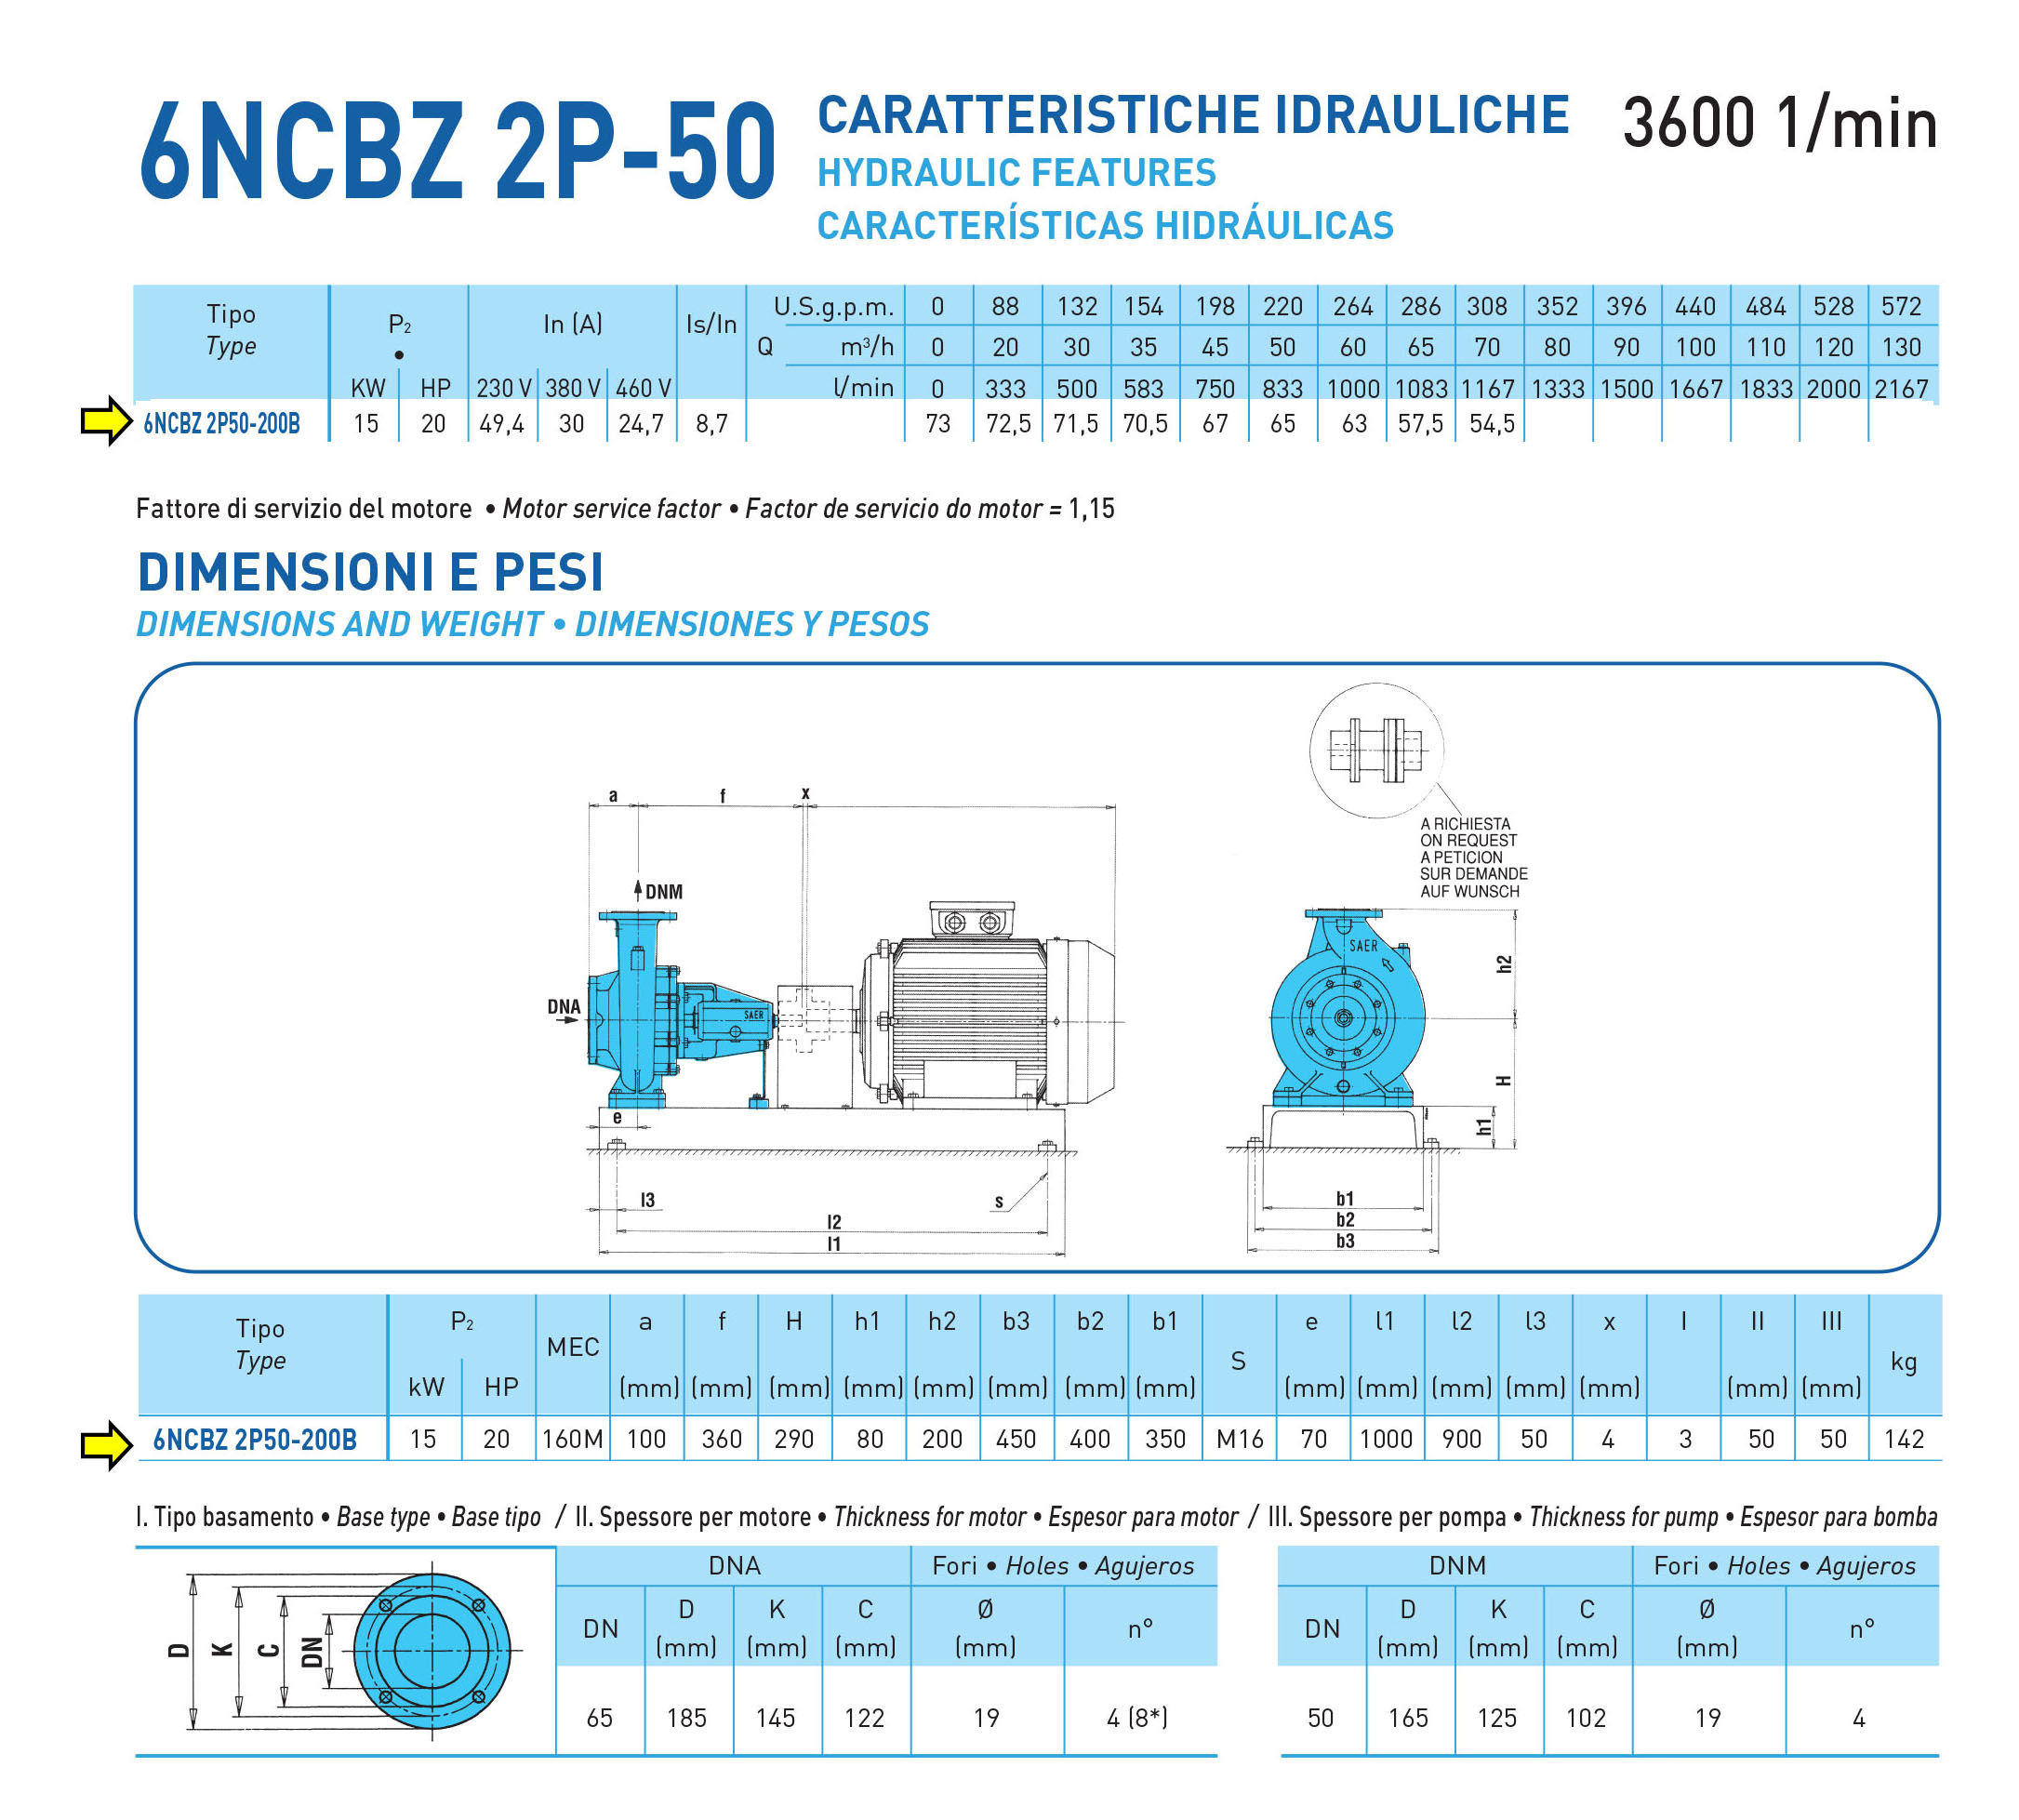 BARESHAFT END-SUCTION SINGLE STAGE CENTRIFUGAL PUMPS - NCB 50-125A - 3600rpm DIMENSIONS